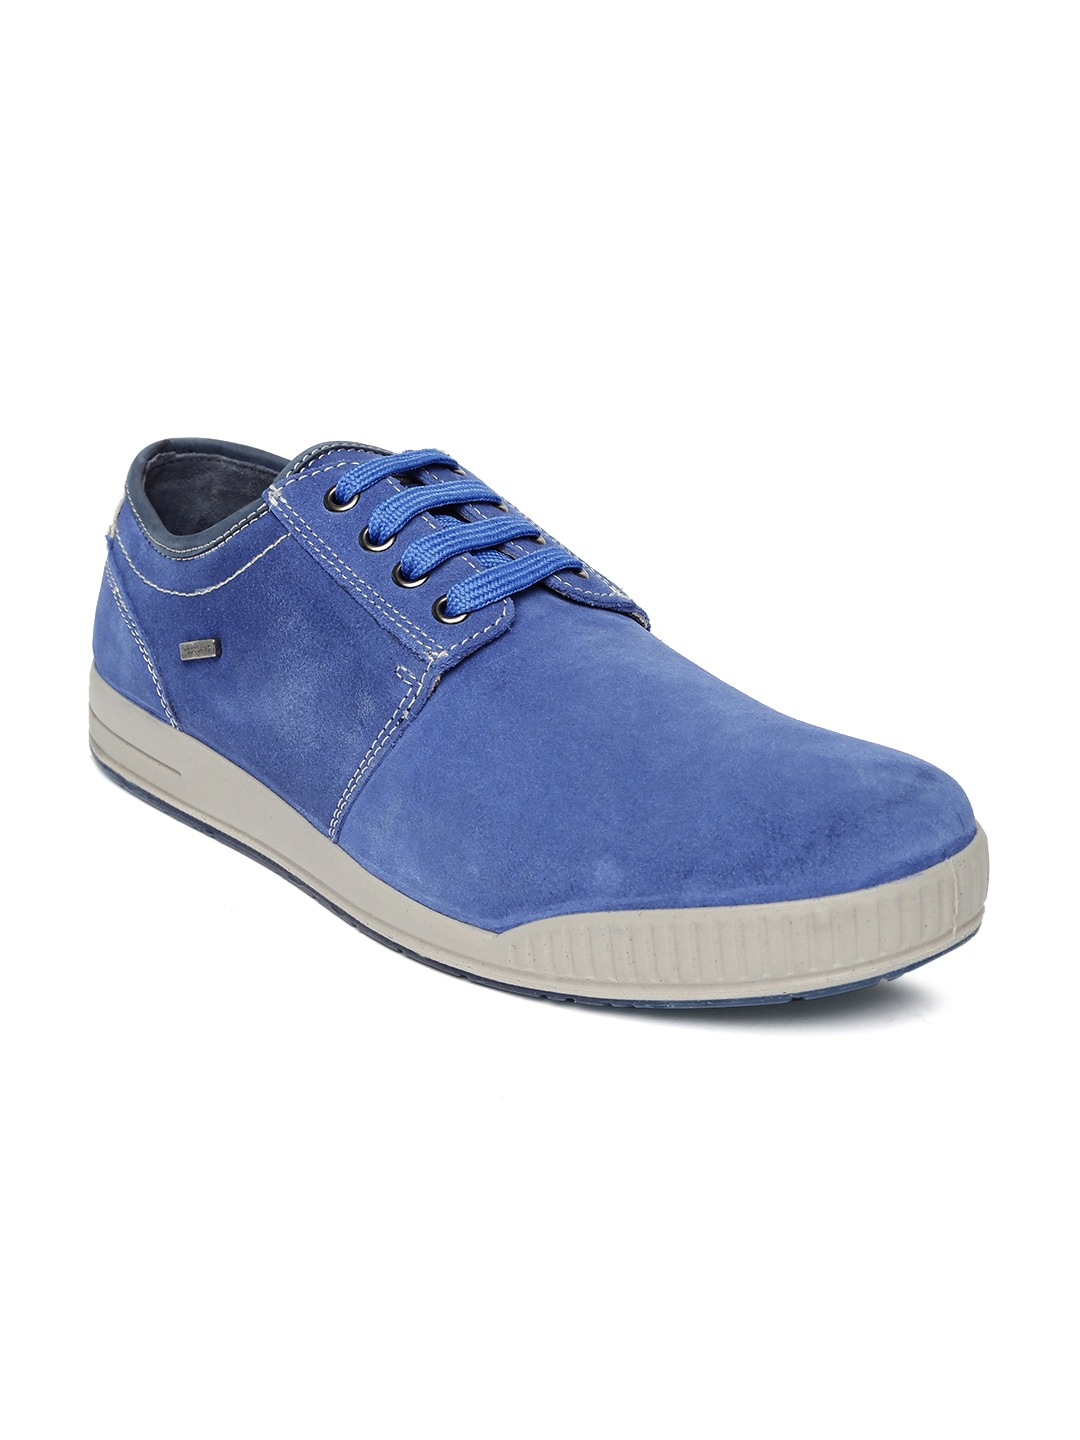 ede49a6a624 Woodland Shoes - Buy Genuine Woodland Shoes Online At Best Price - Myntra